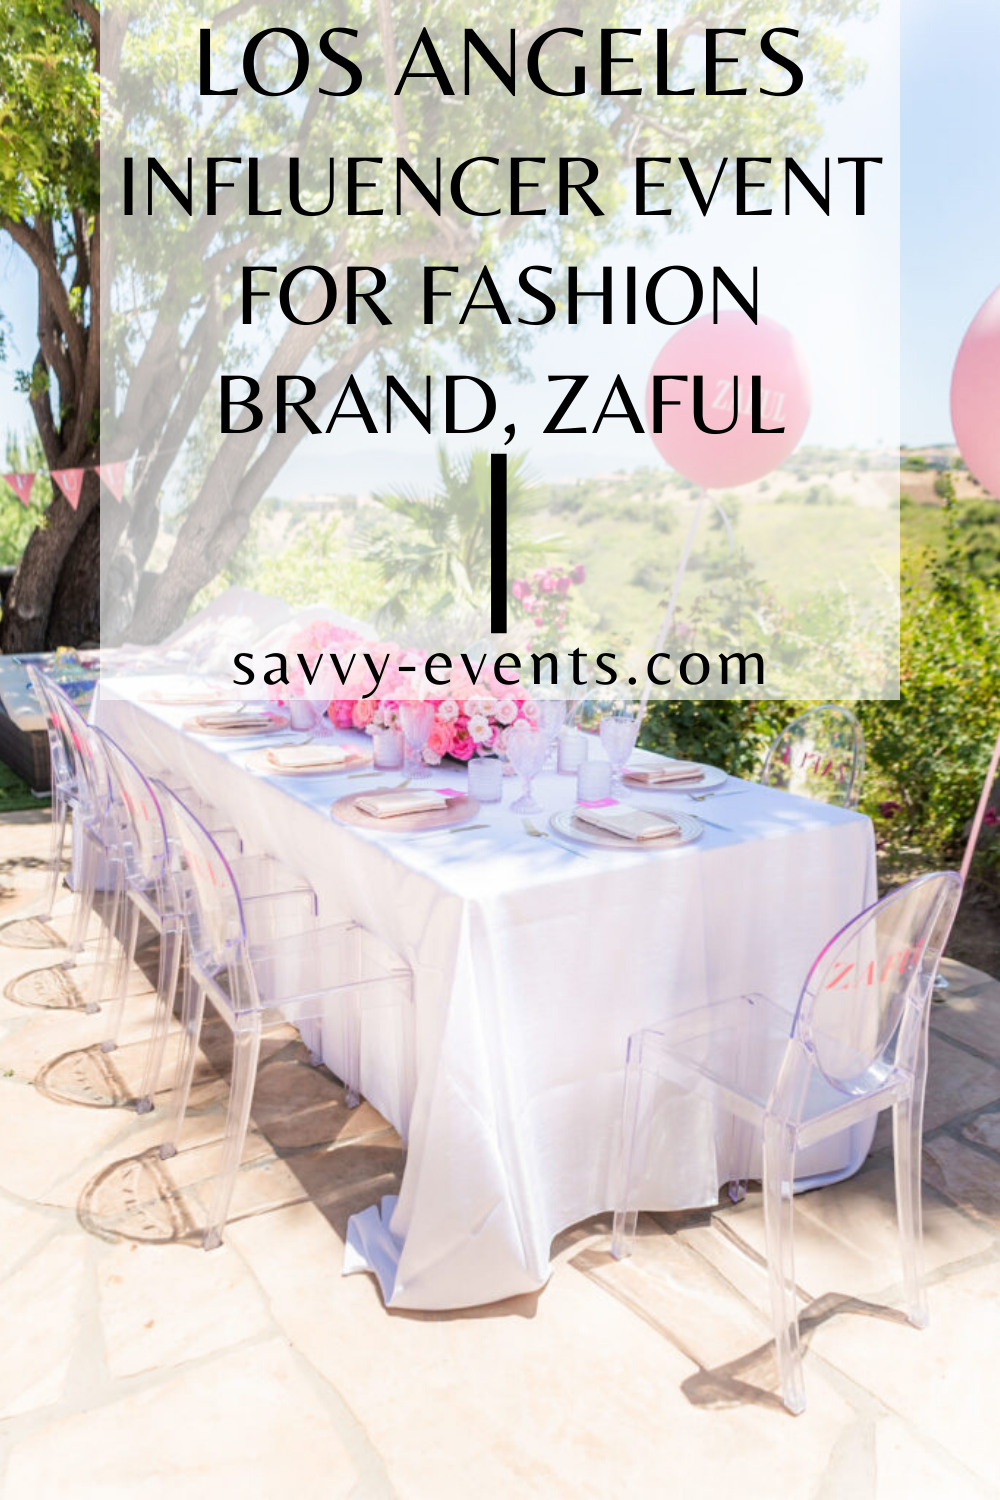 Los Angeles Influencer Event for Fashion Brand, ZAFUL in